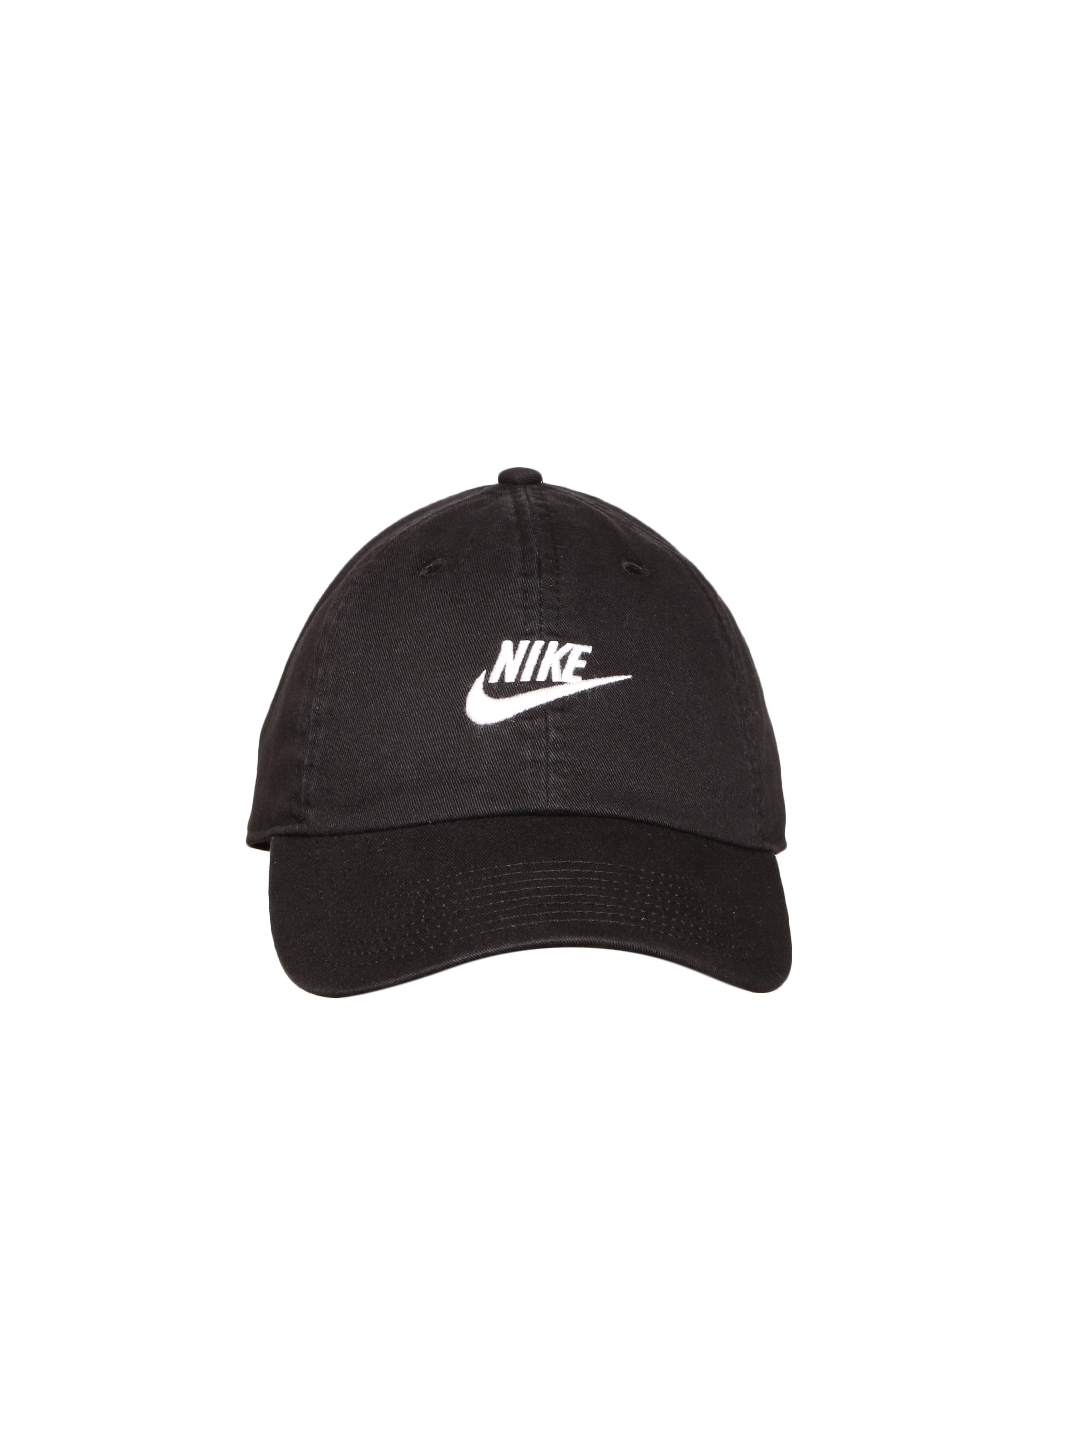 Caps Nike Mens - Buy Caps Nike Mens online in India f1ae80f8f6c